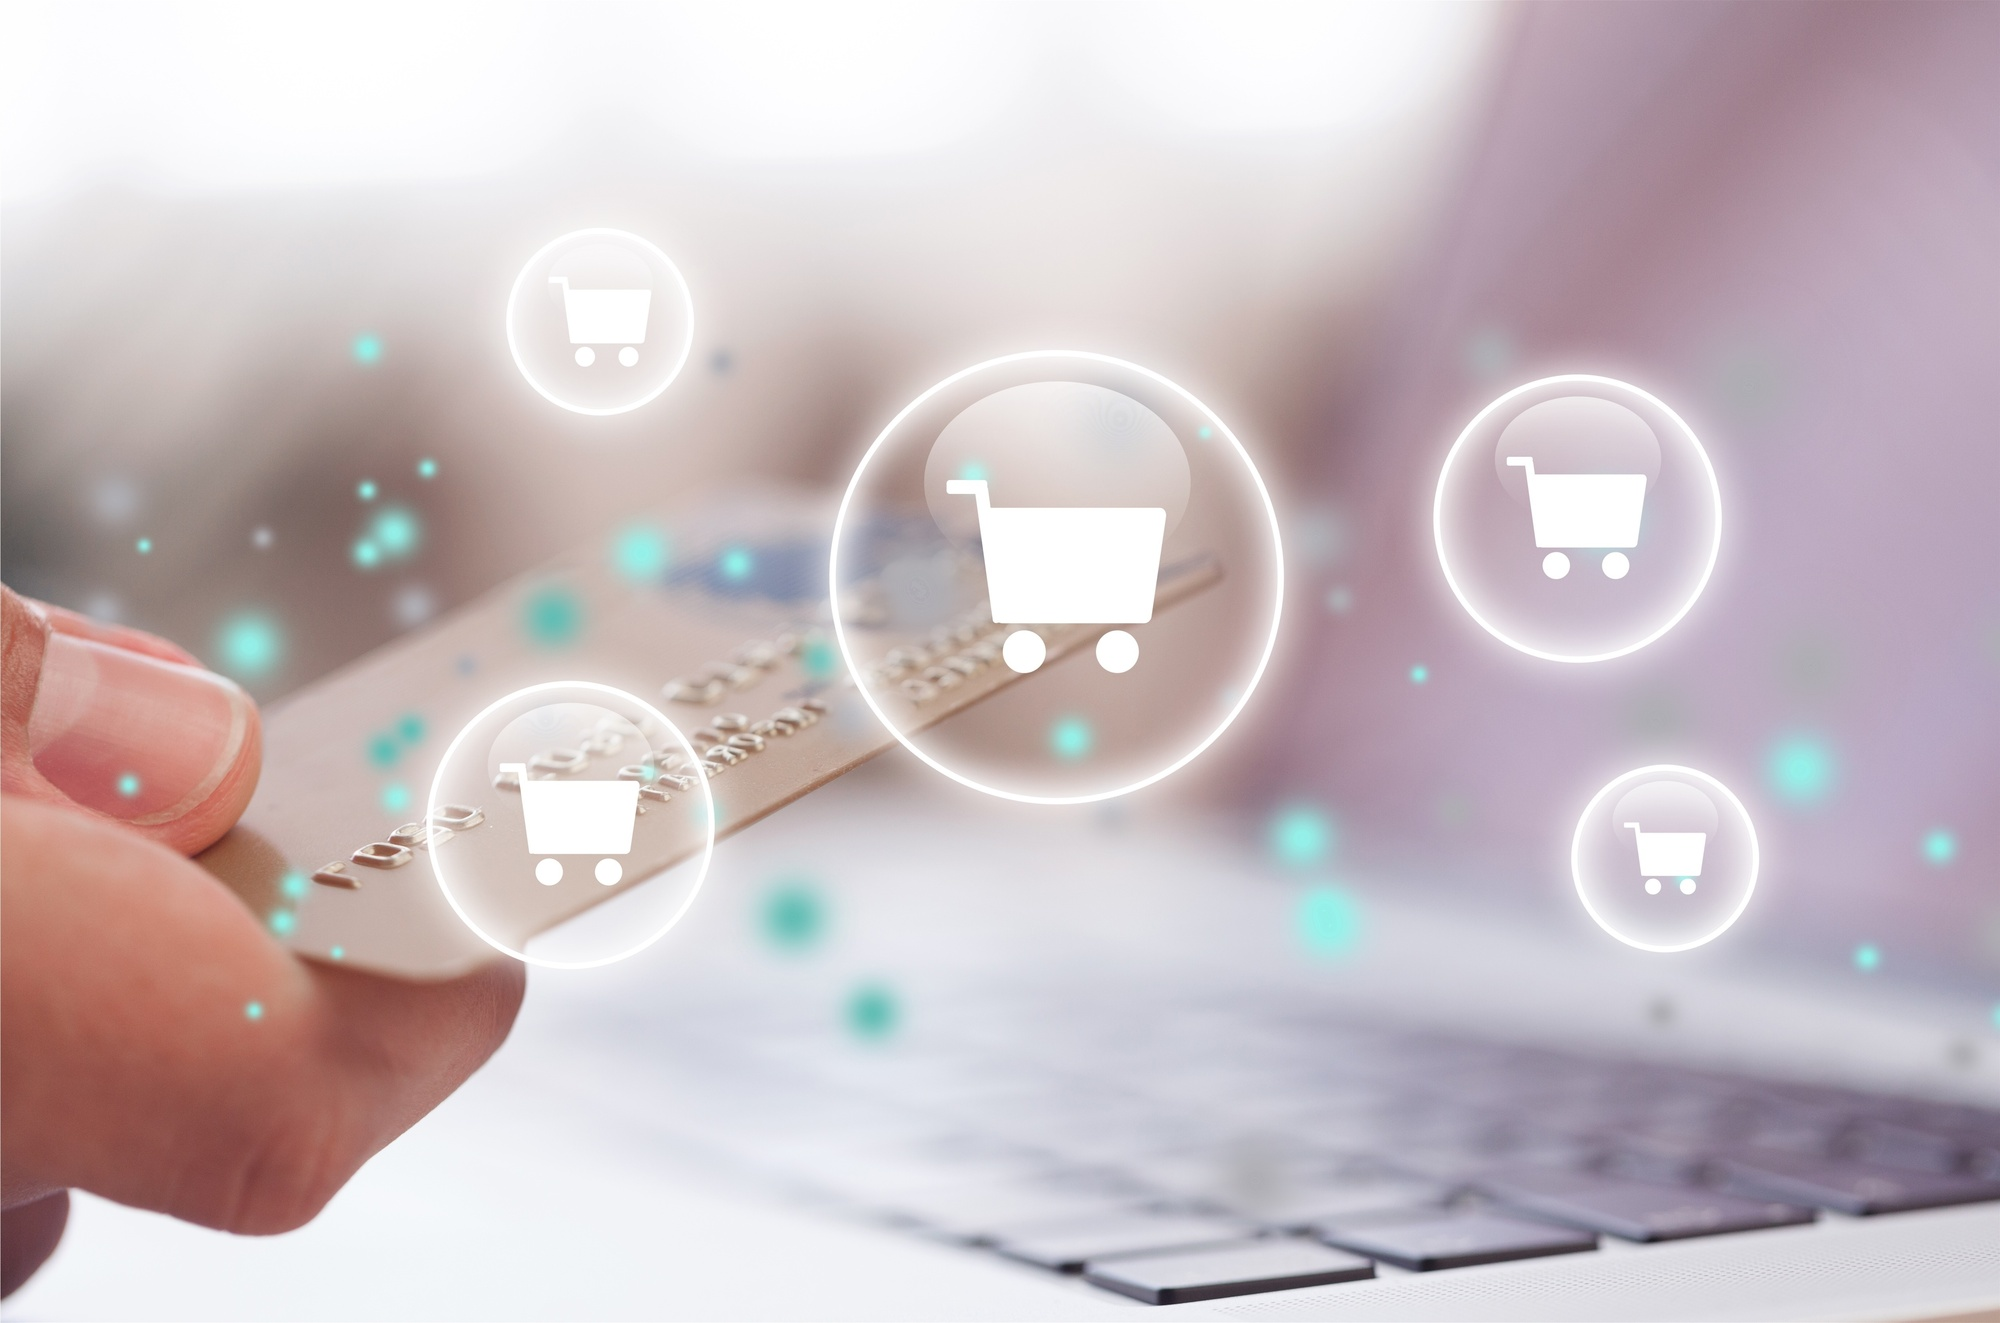 eCommerce is the practice of selling your business's goods and services on the internet. That's not all there is to it though. Keep reading to learn more.